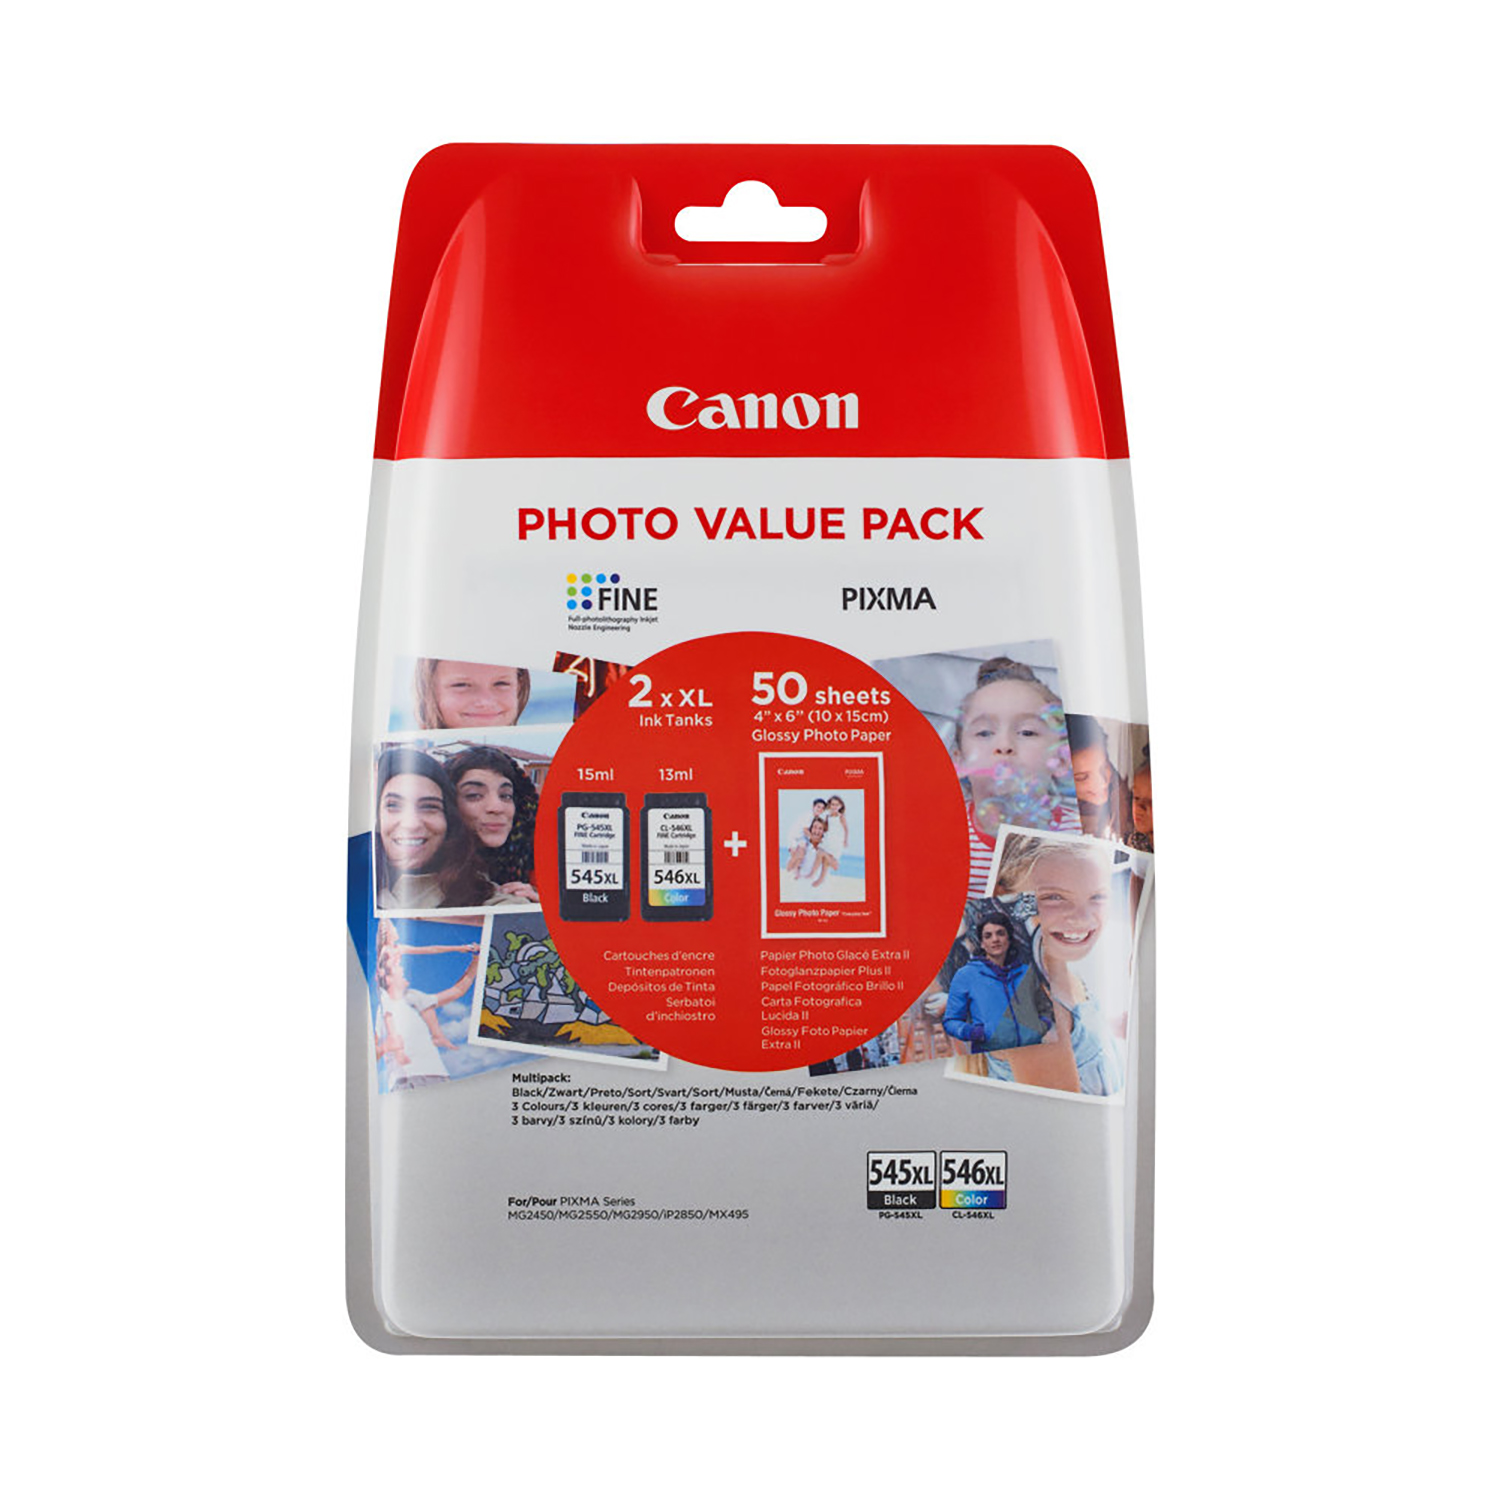 Ink cartridges Canon PG-545XL/CL-546XL Value Pack High Capacity Black/Tri-colour with 4x6 Photo Paper Ref 8286B006